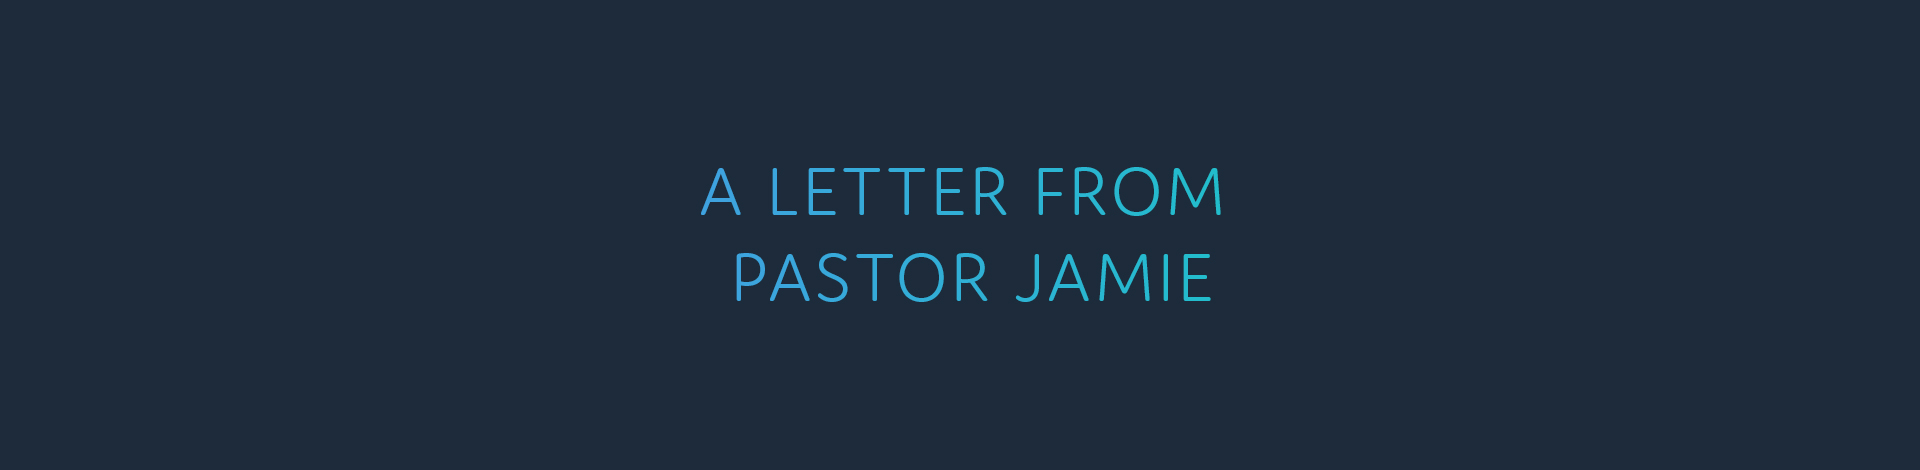 A Letter From Pastor Jamie